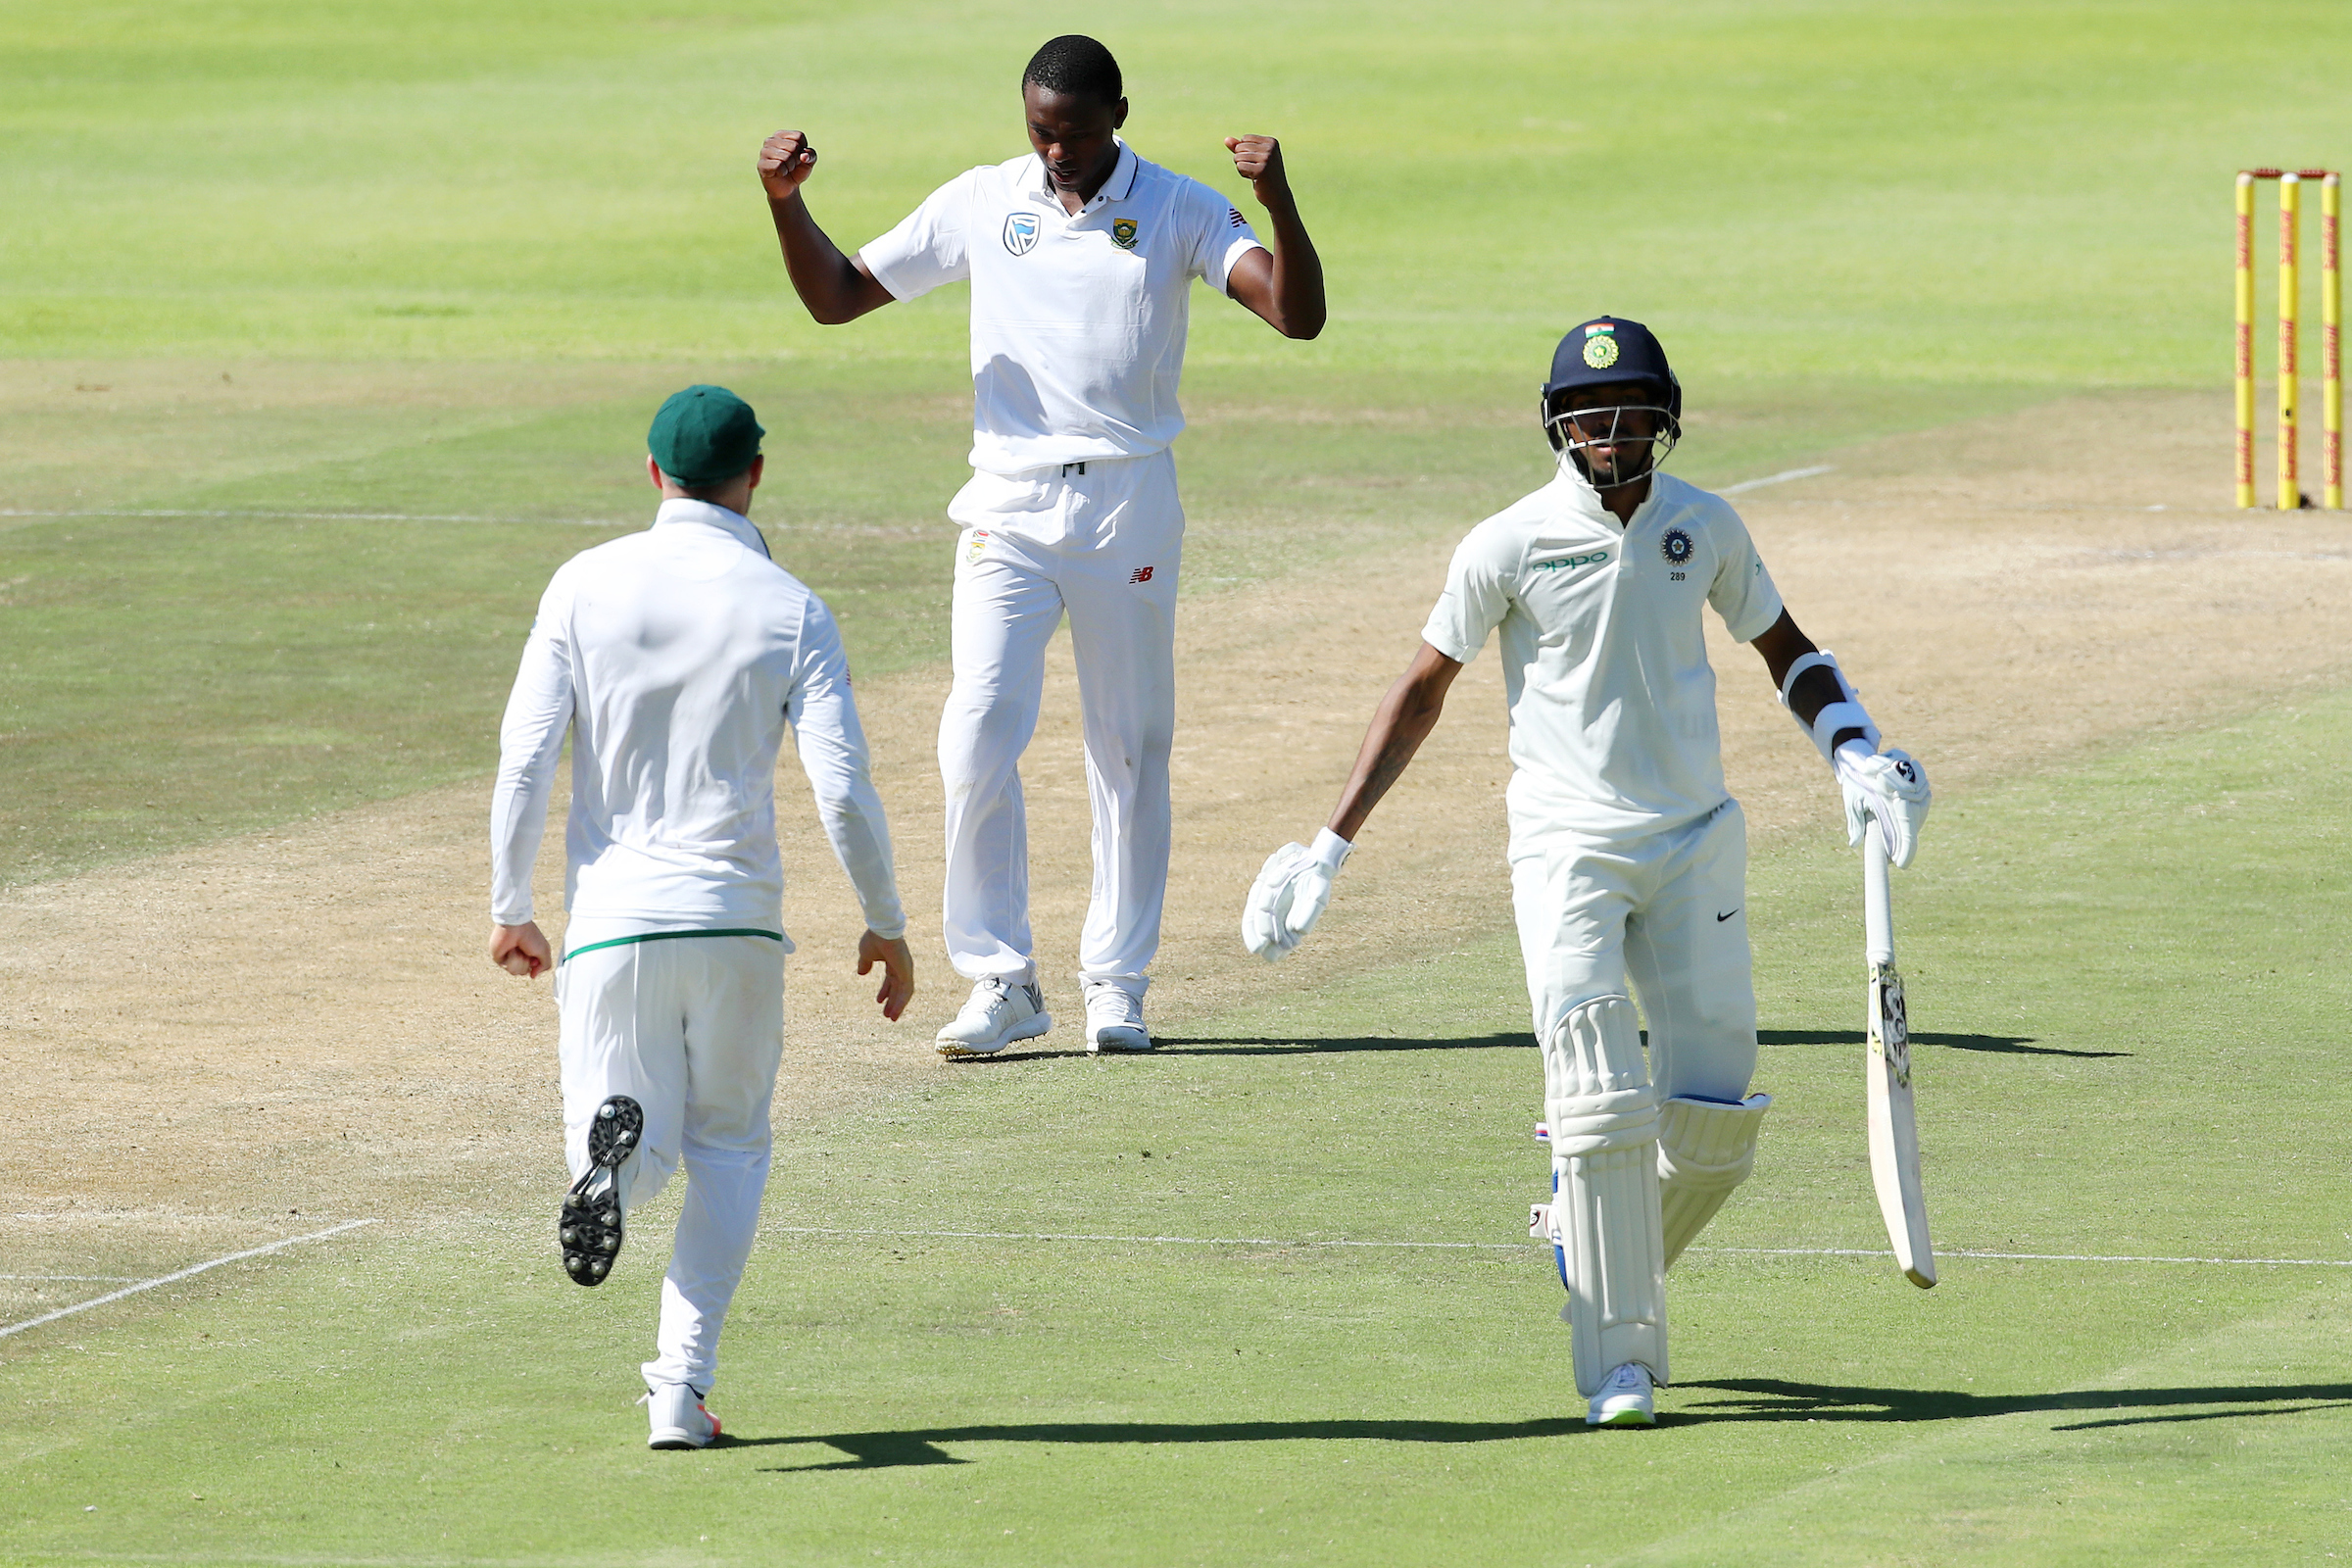 Bruised heel forces Steyn out of Test and series